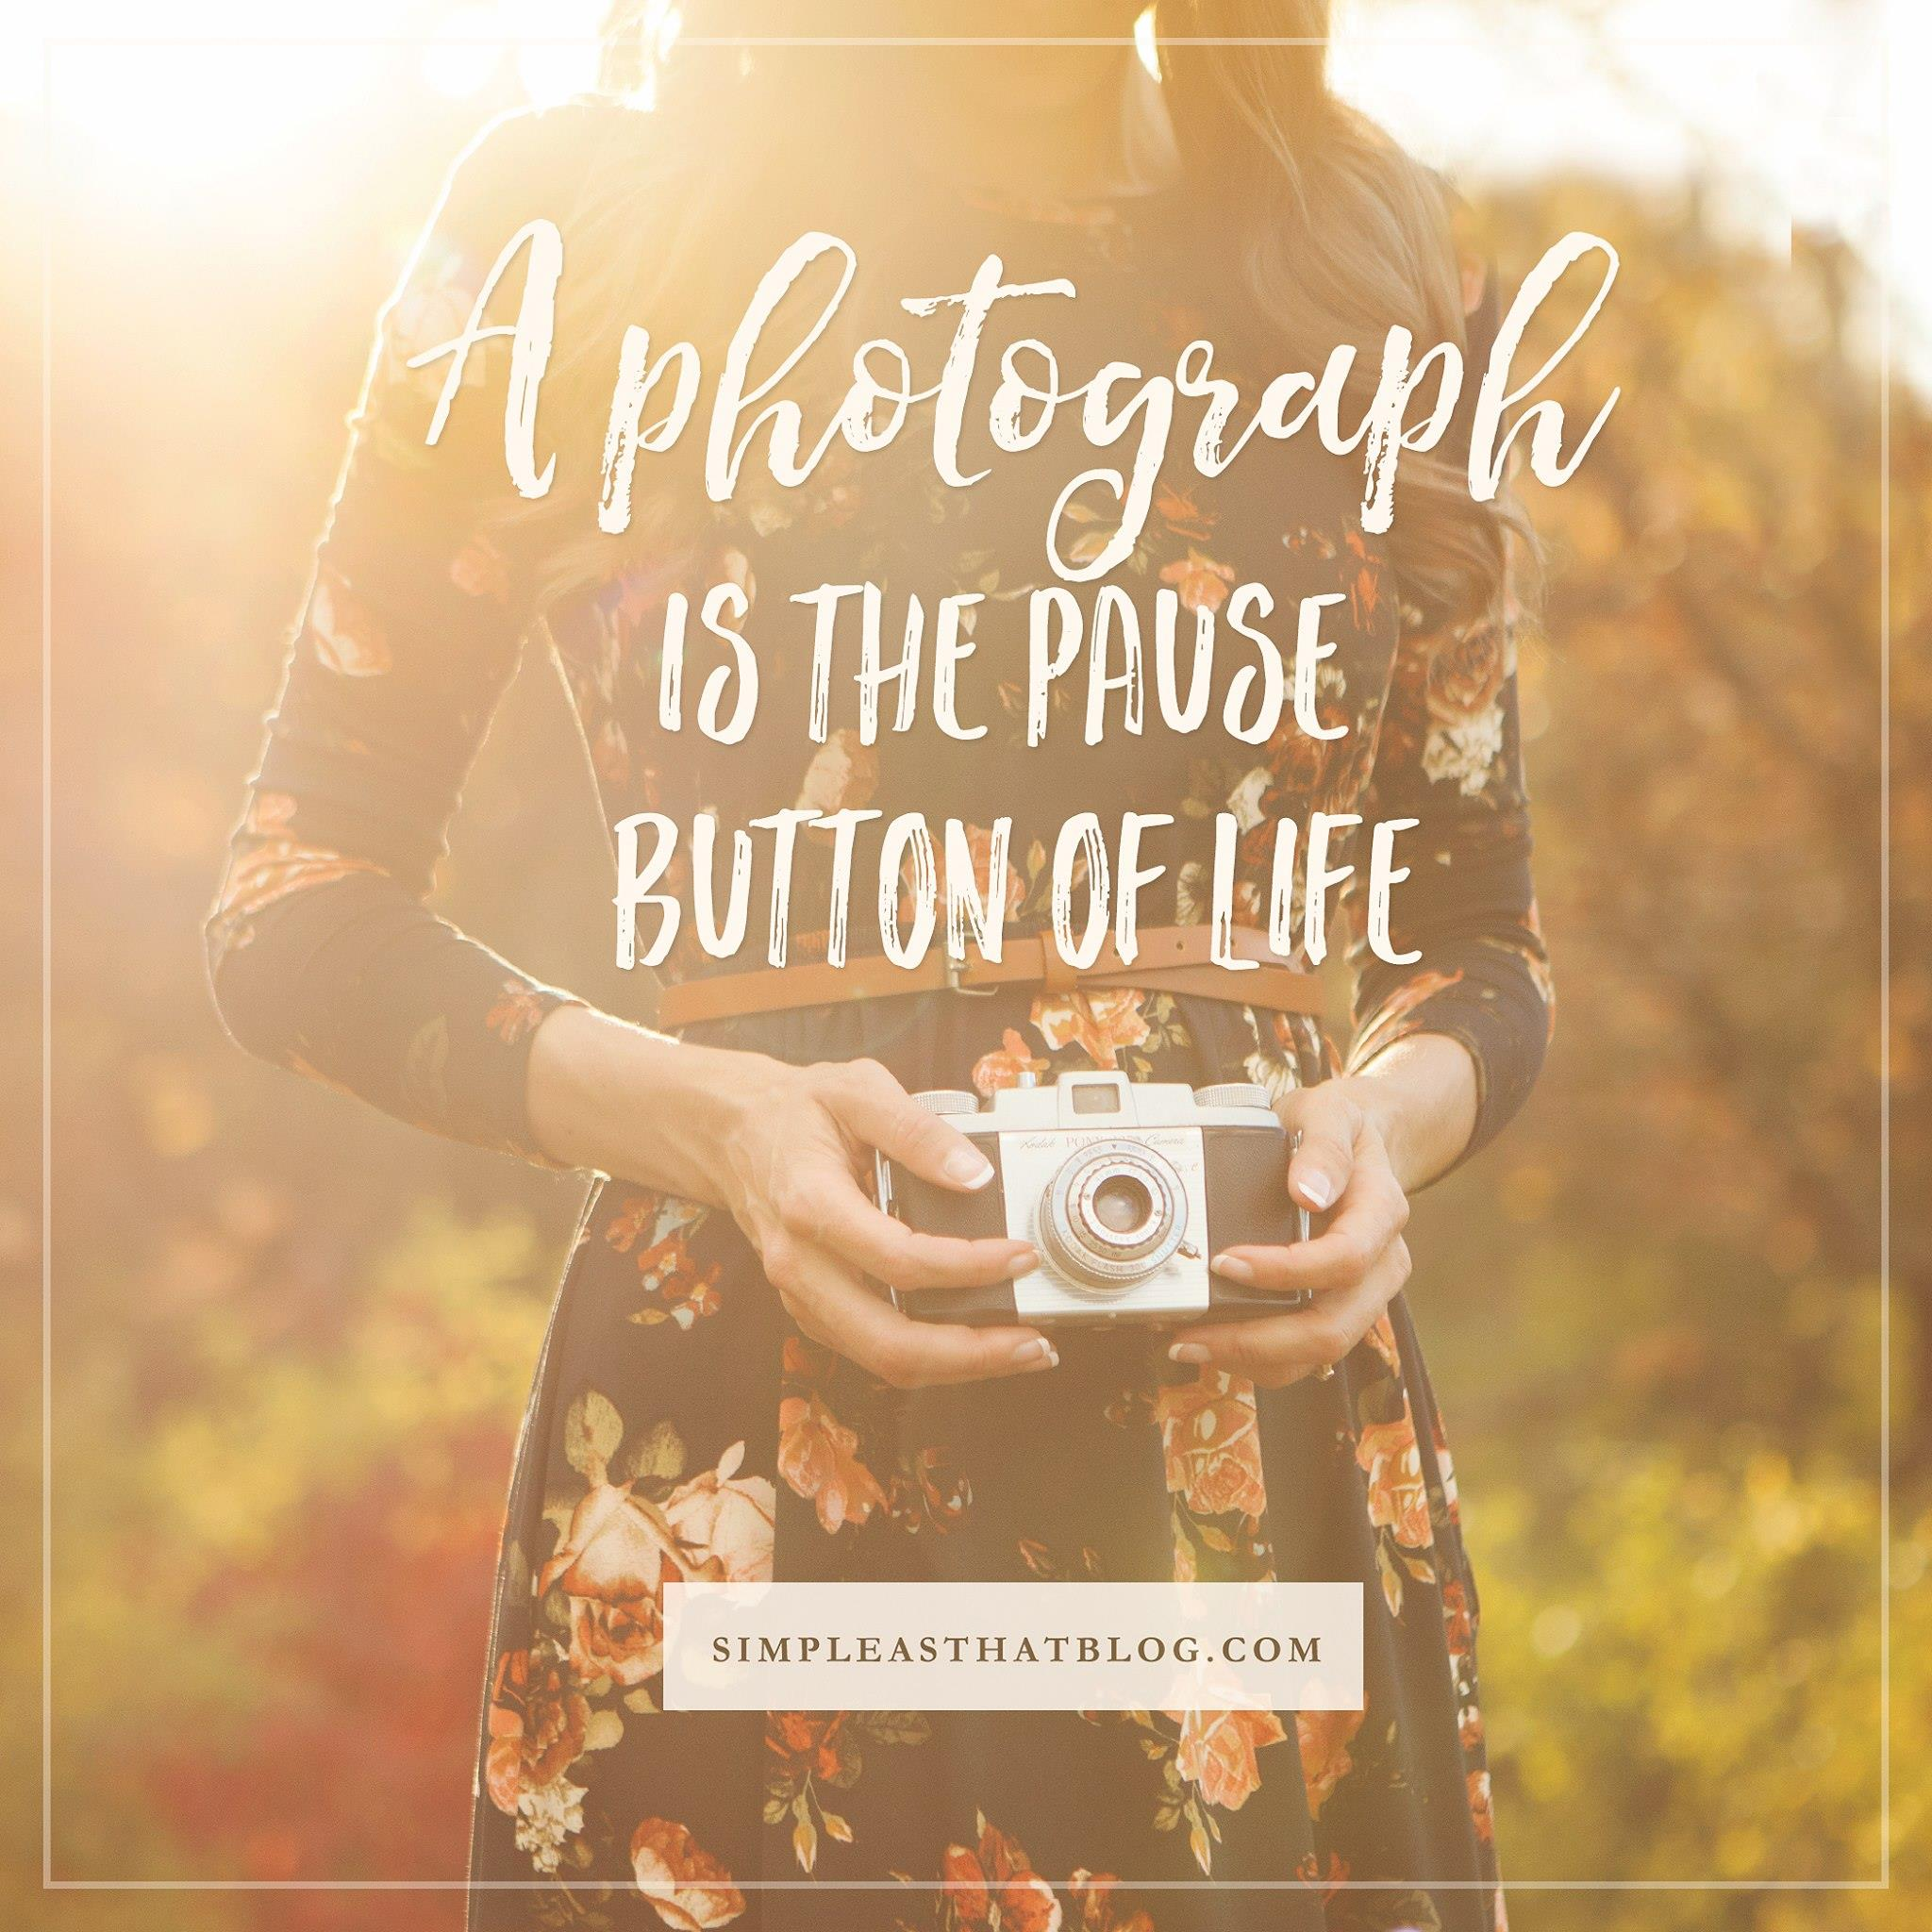 12 Quotes to Inspire your Photography Journey // A photography is the pause button of life. - unknown